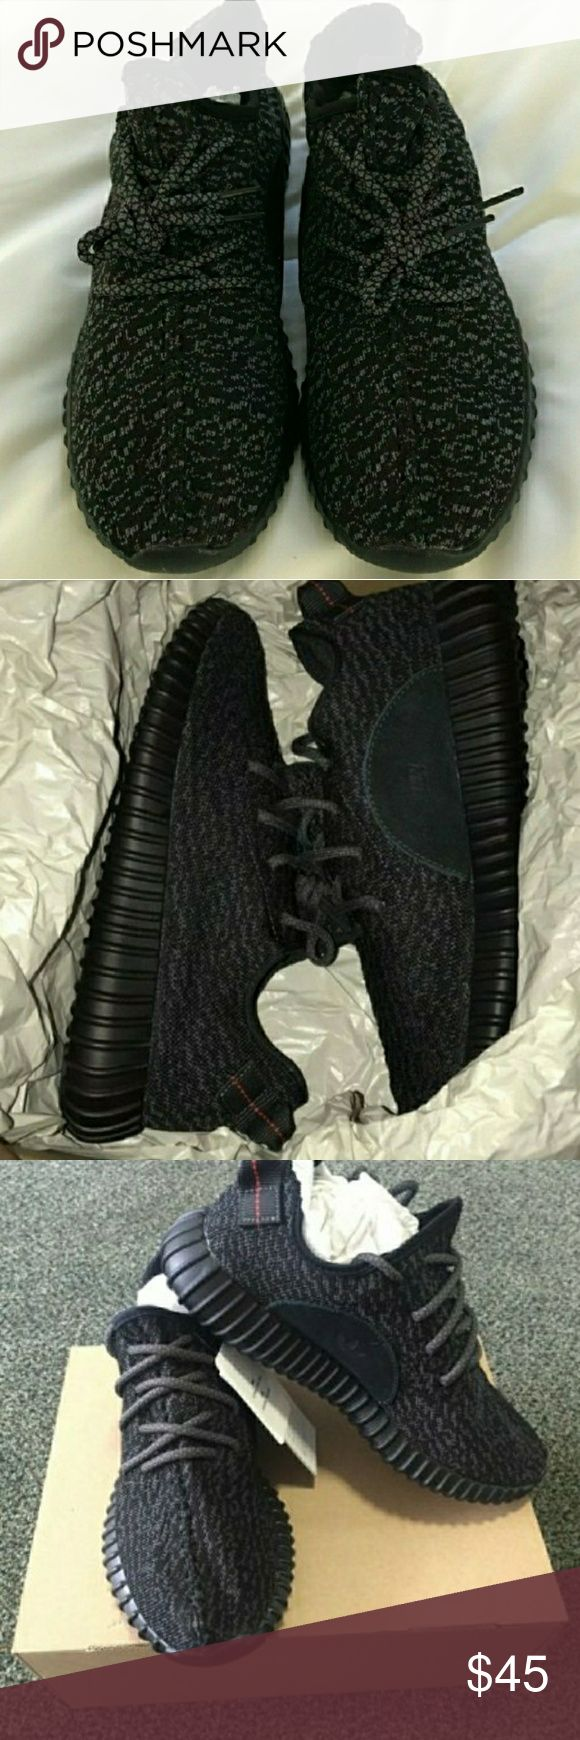 YEEZY BOOST REPLICAS Great pair of replicas! Brand new and never worn! Please know NO TRADES and PRICES FIRM!  🦋 BOX NOT INCLUDED. adidas Shoes Athletic Shoes